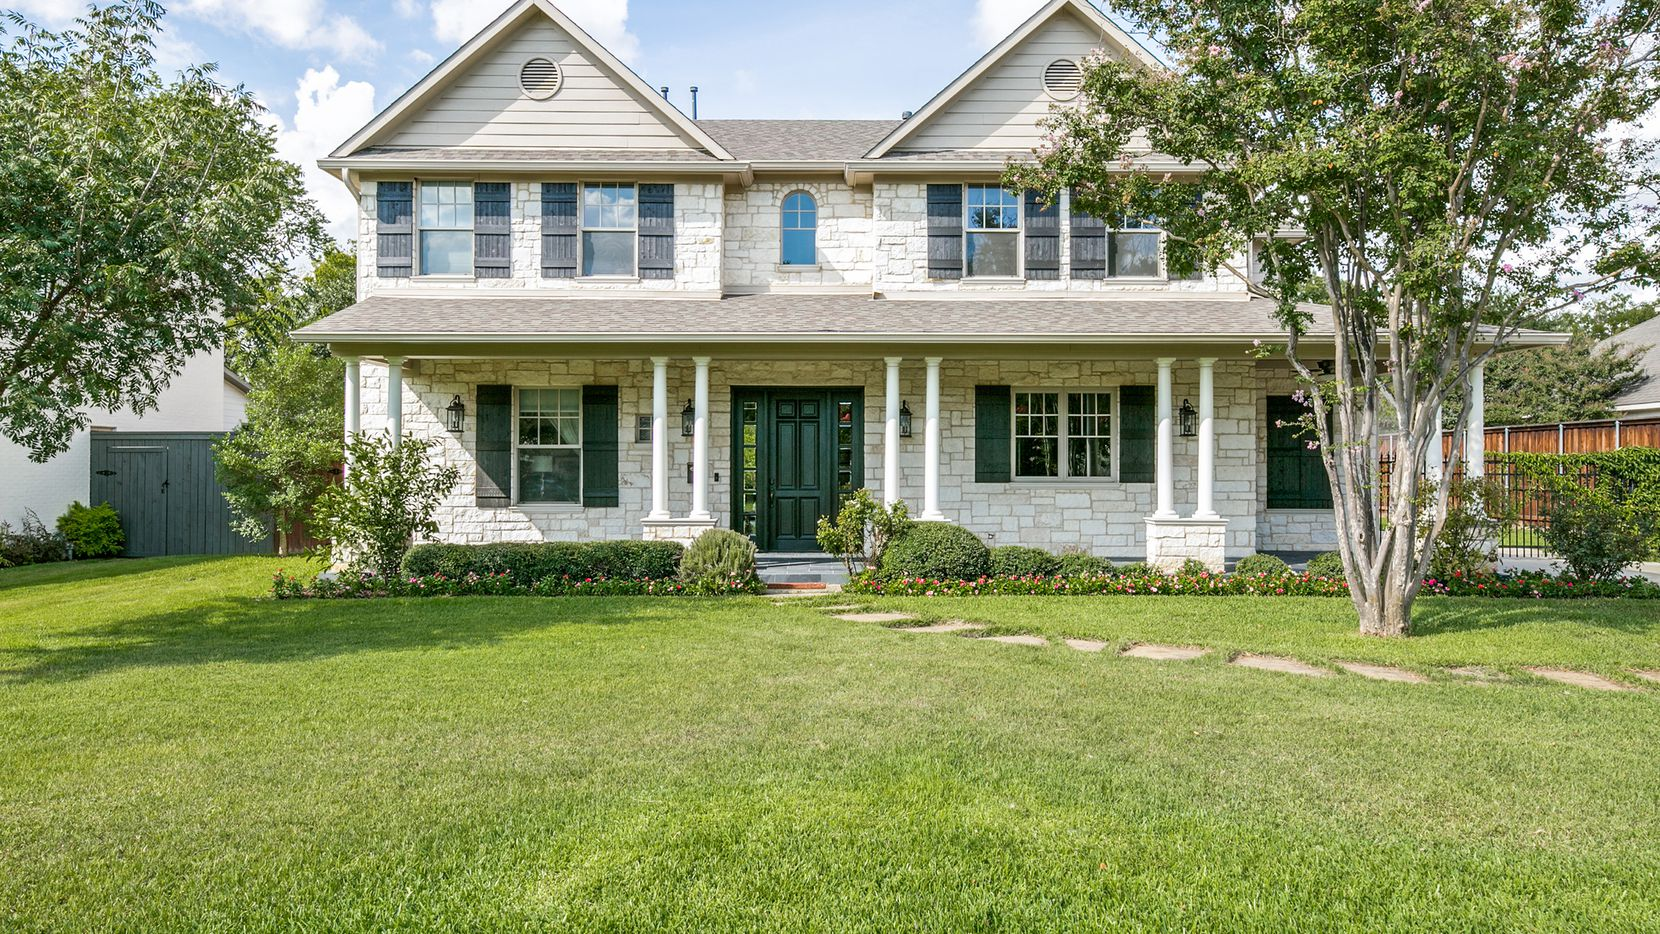 The four-bedroom custom-built home at 4351 Middleton Road is situated on a 240-foot-deep lot.